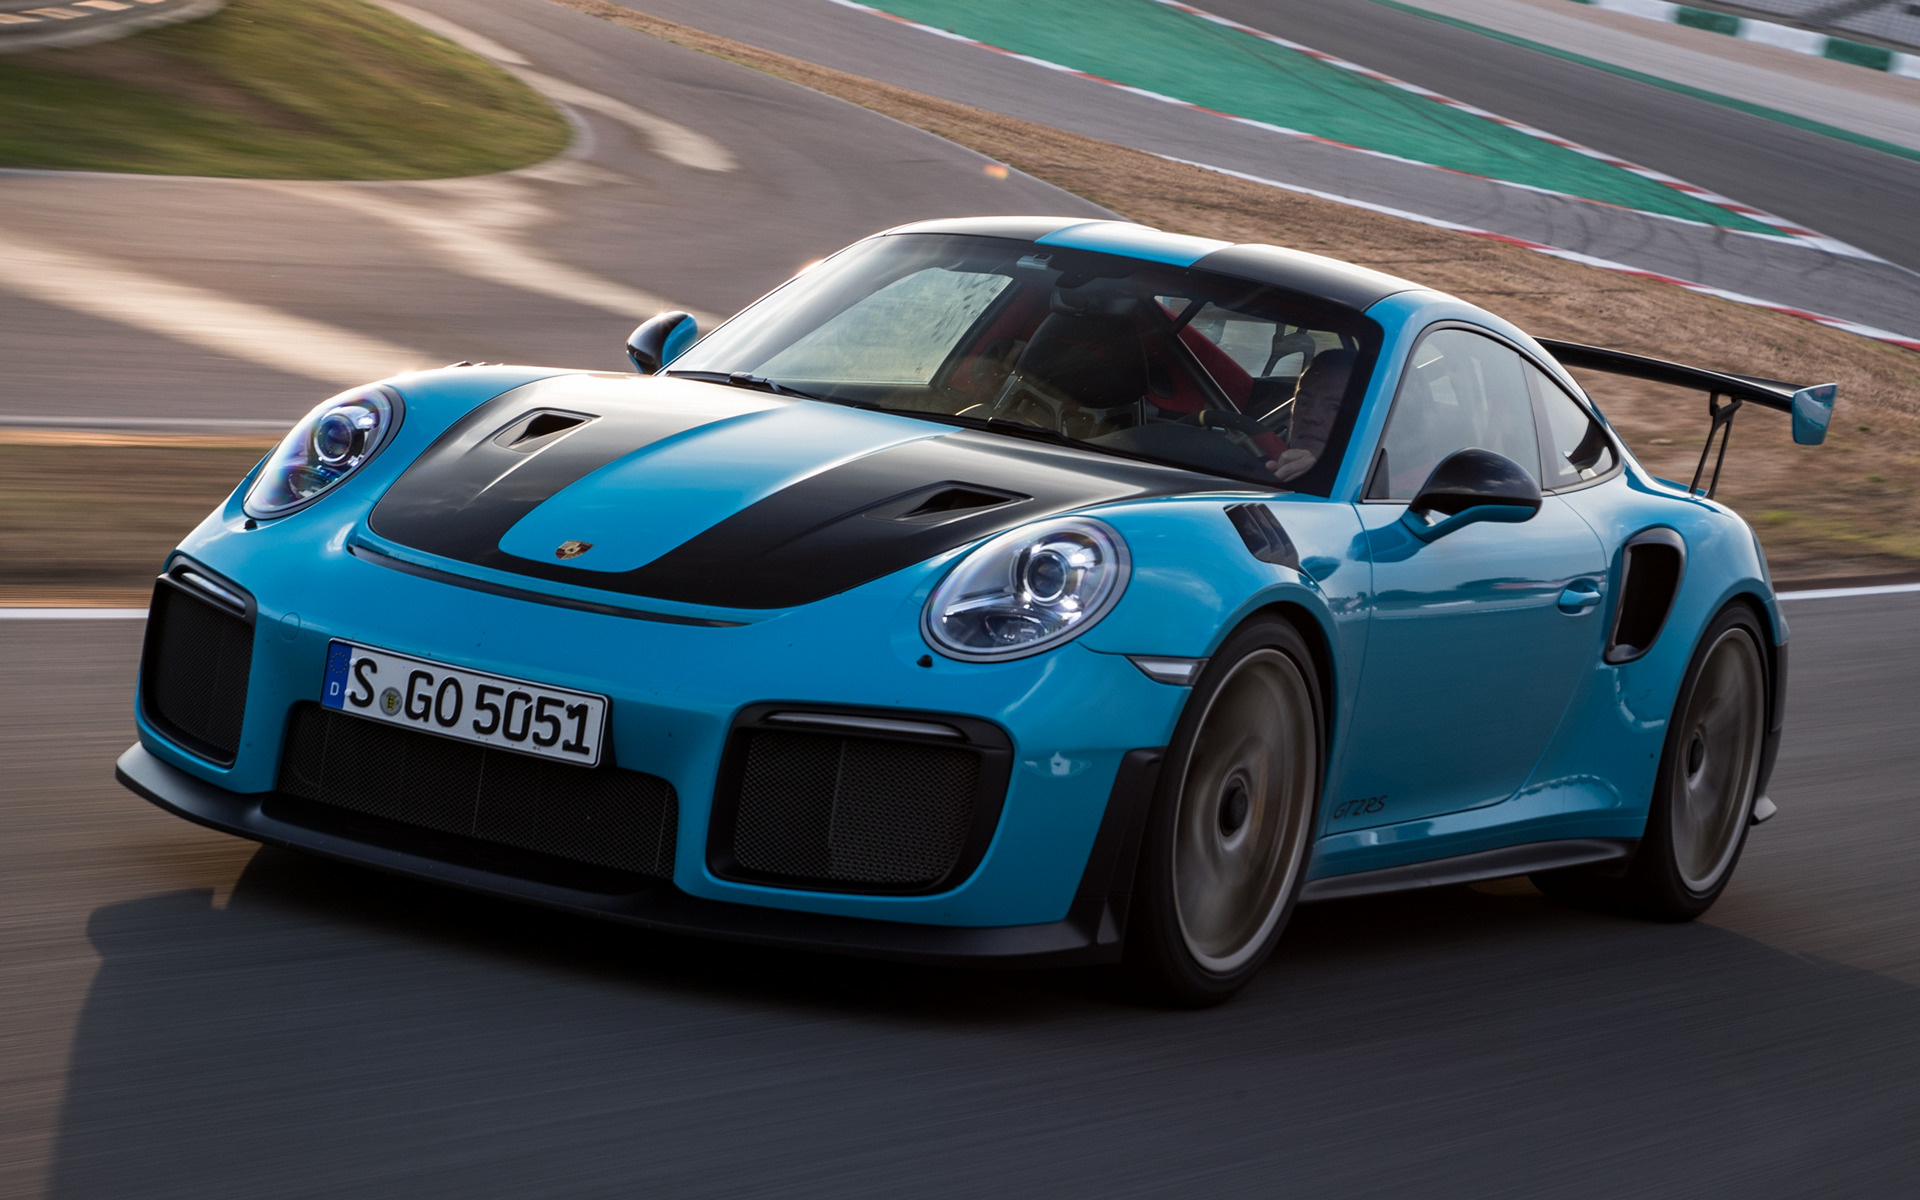 porsche-911-gt2-rs-car-wallpaper-74374 Cozy Porsche 911 Gt2 Rs Wallpaper Cars Trend